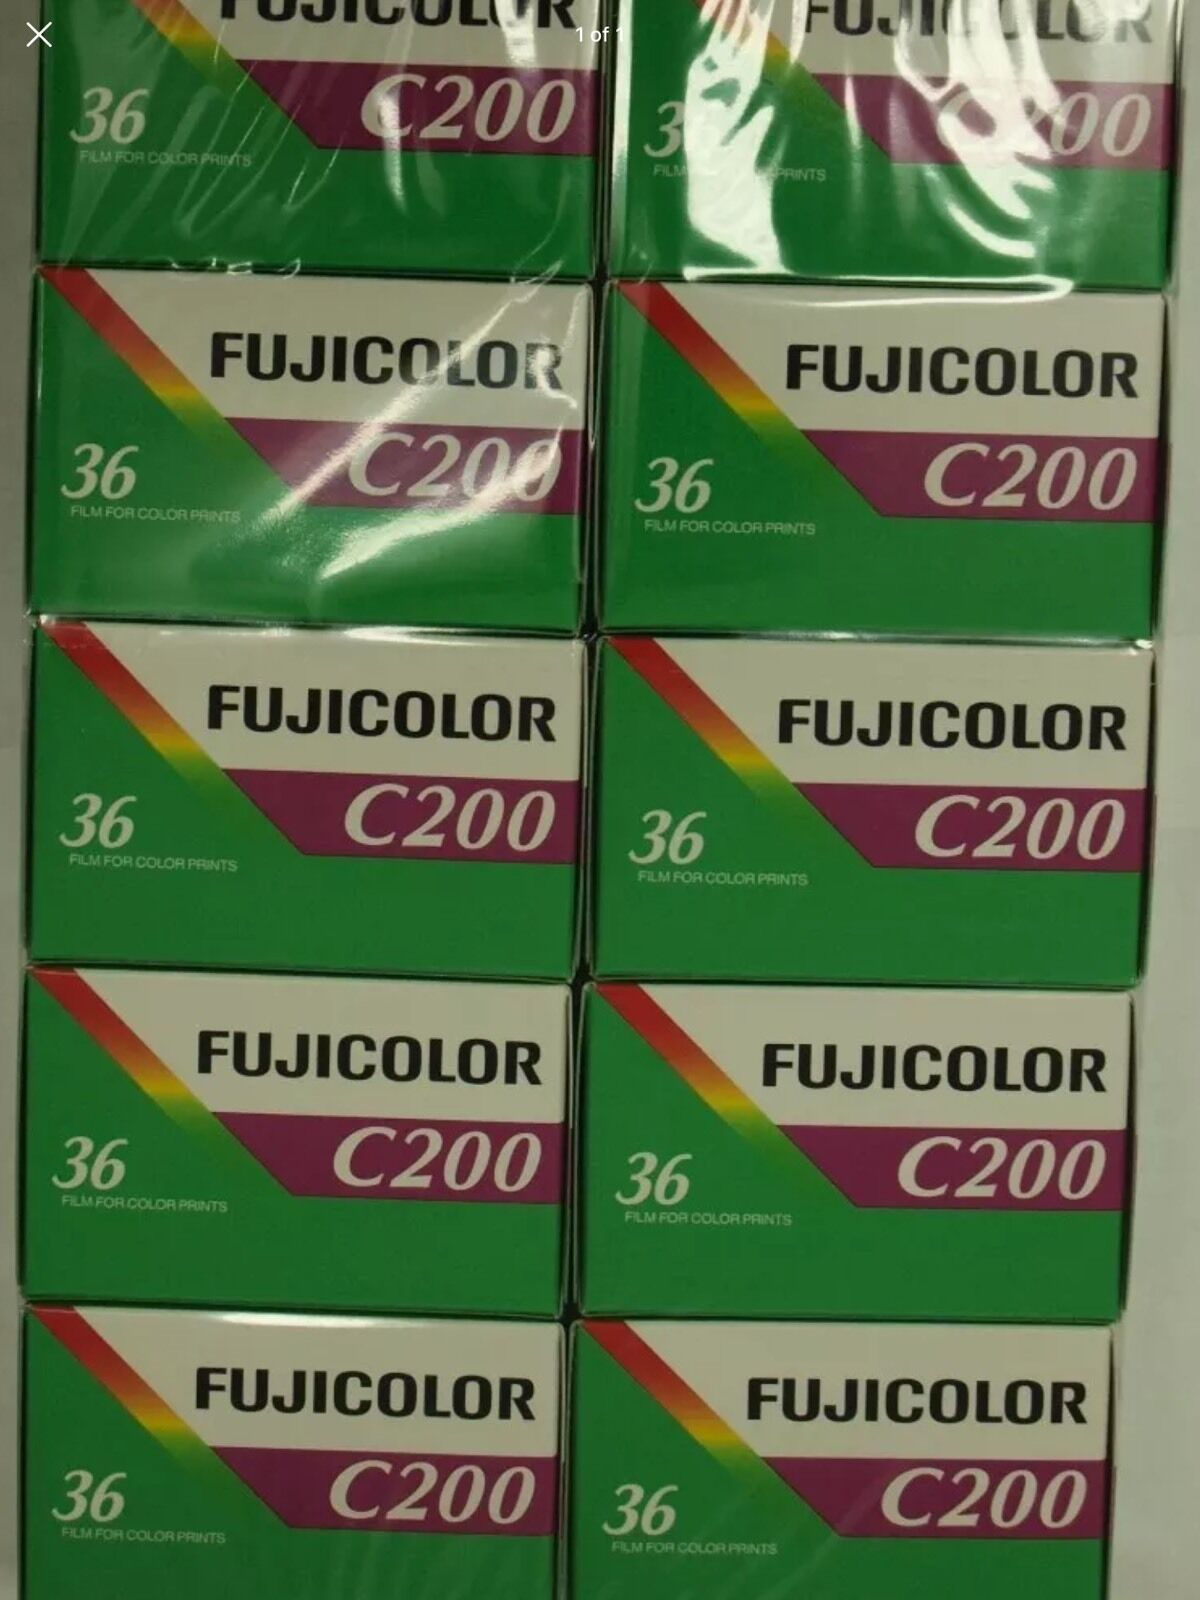 Fujicolor C200 Film 35mm Fujifilm 10 Rolls 36 Exp Color Print Fuji 2013 1 Of 1only 3 Available See More